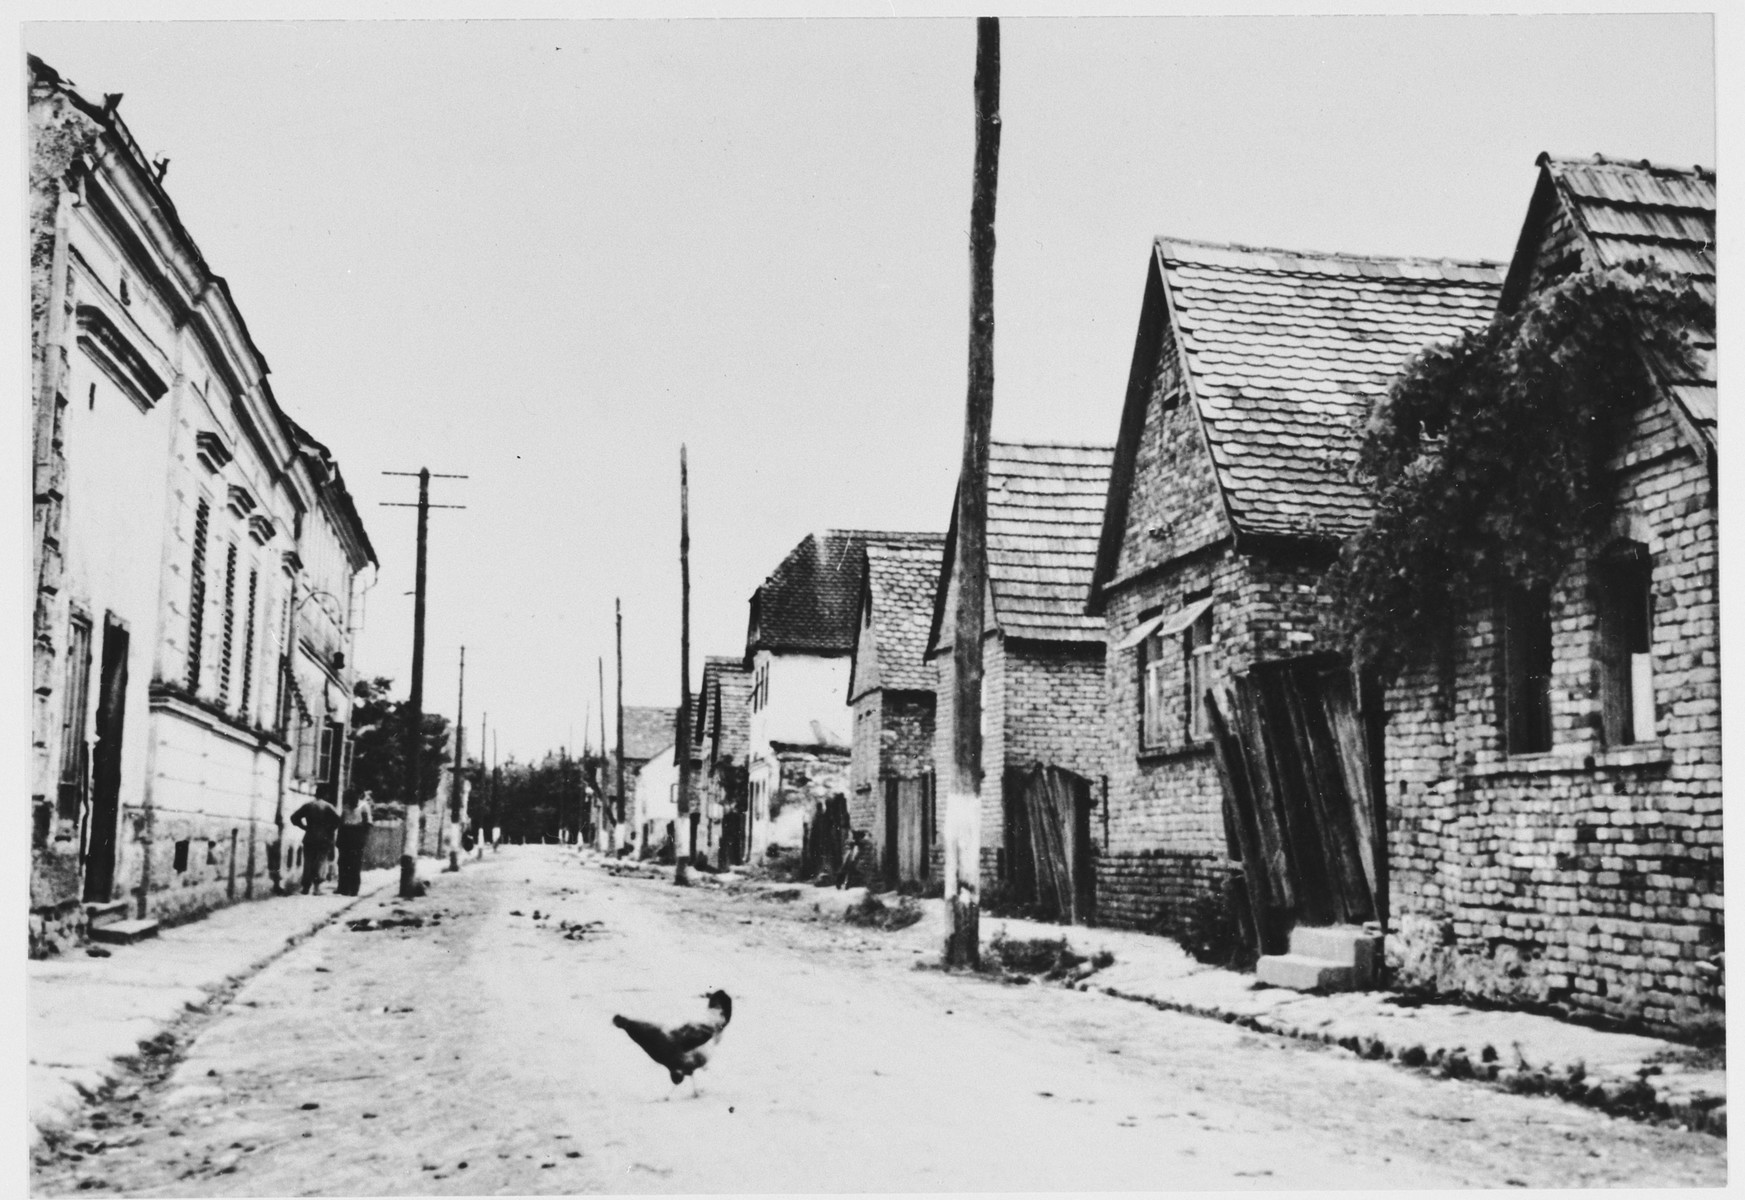 View of a street in the Jasenovac concentration camp.